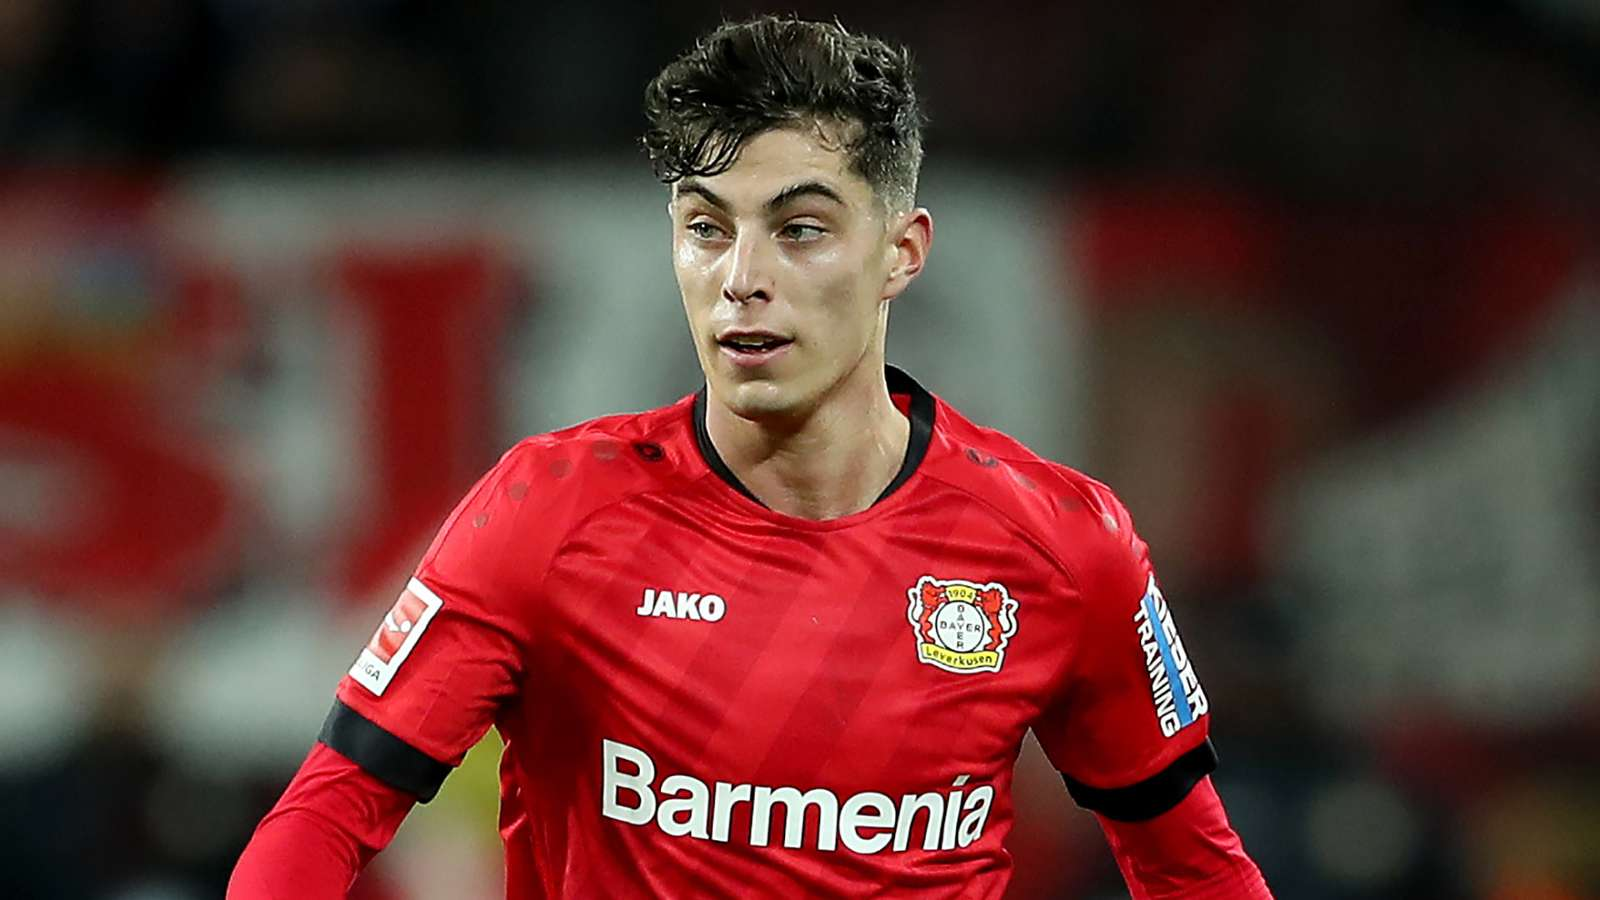 Voller tips Havertz to join 'world-class club' after Leverkusen - Bóng Đá